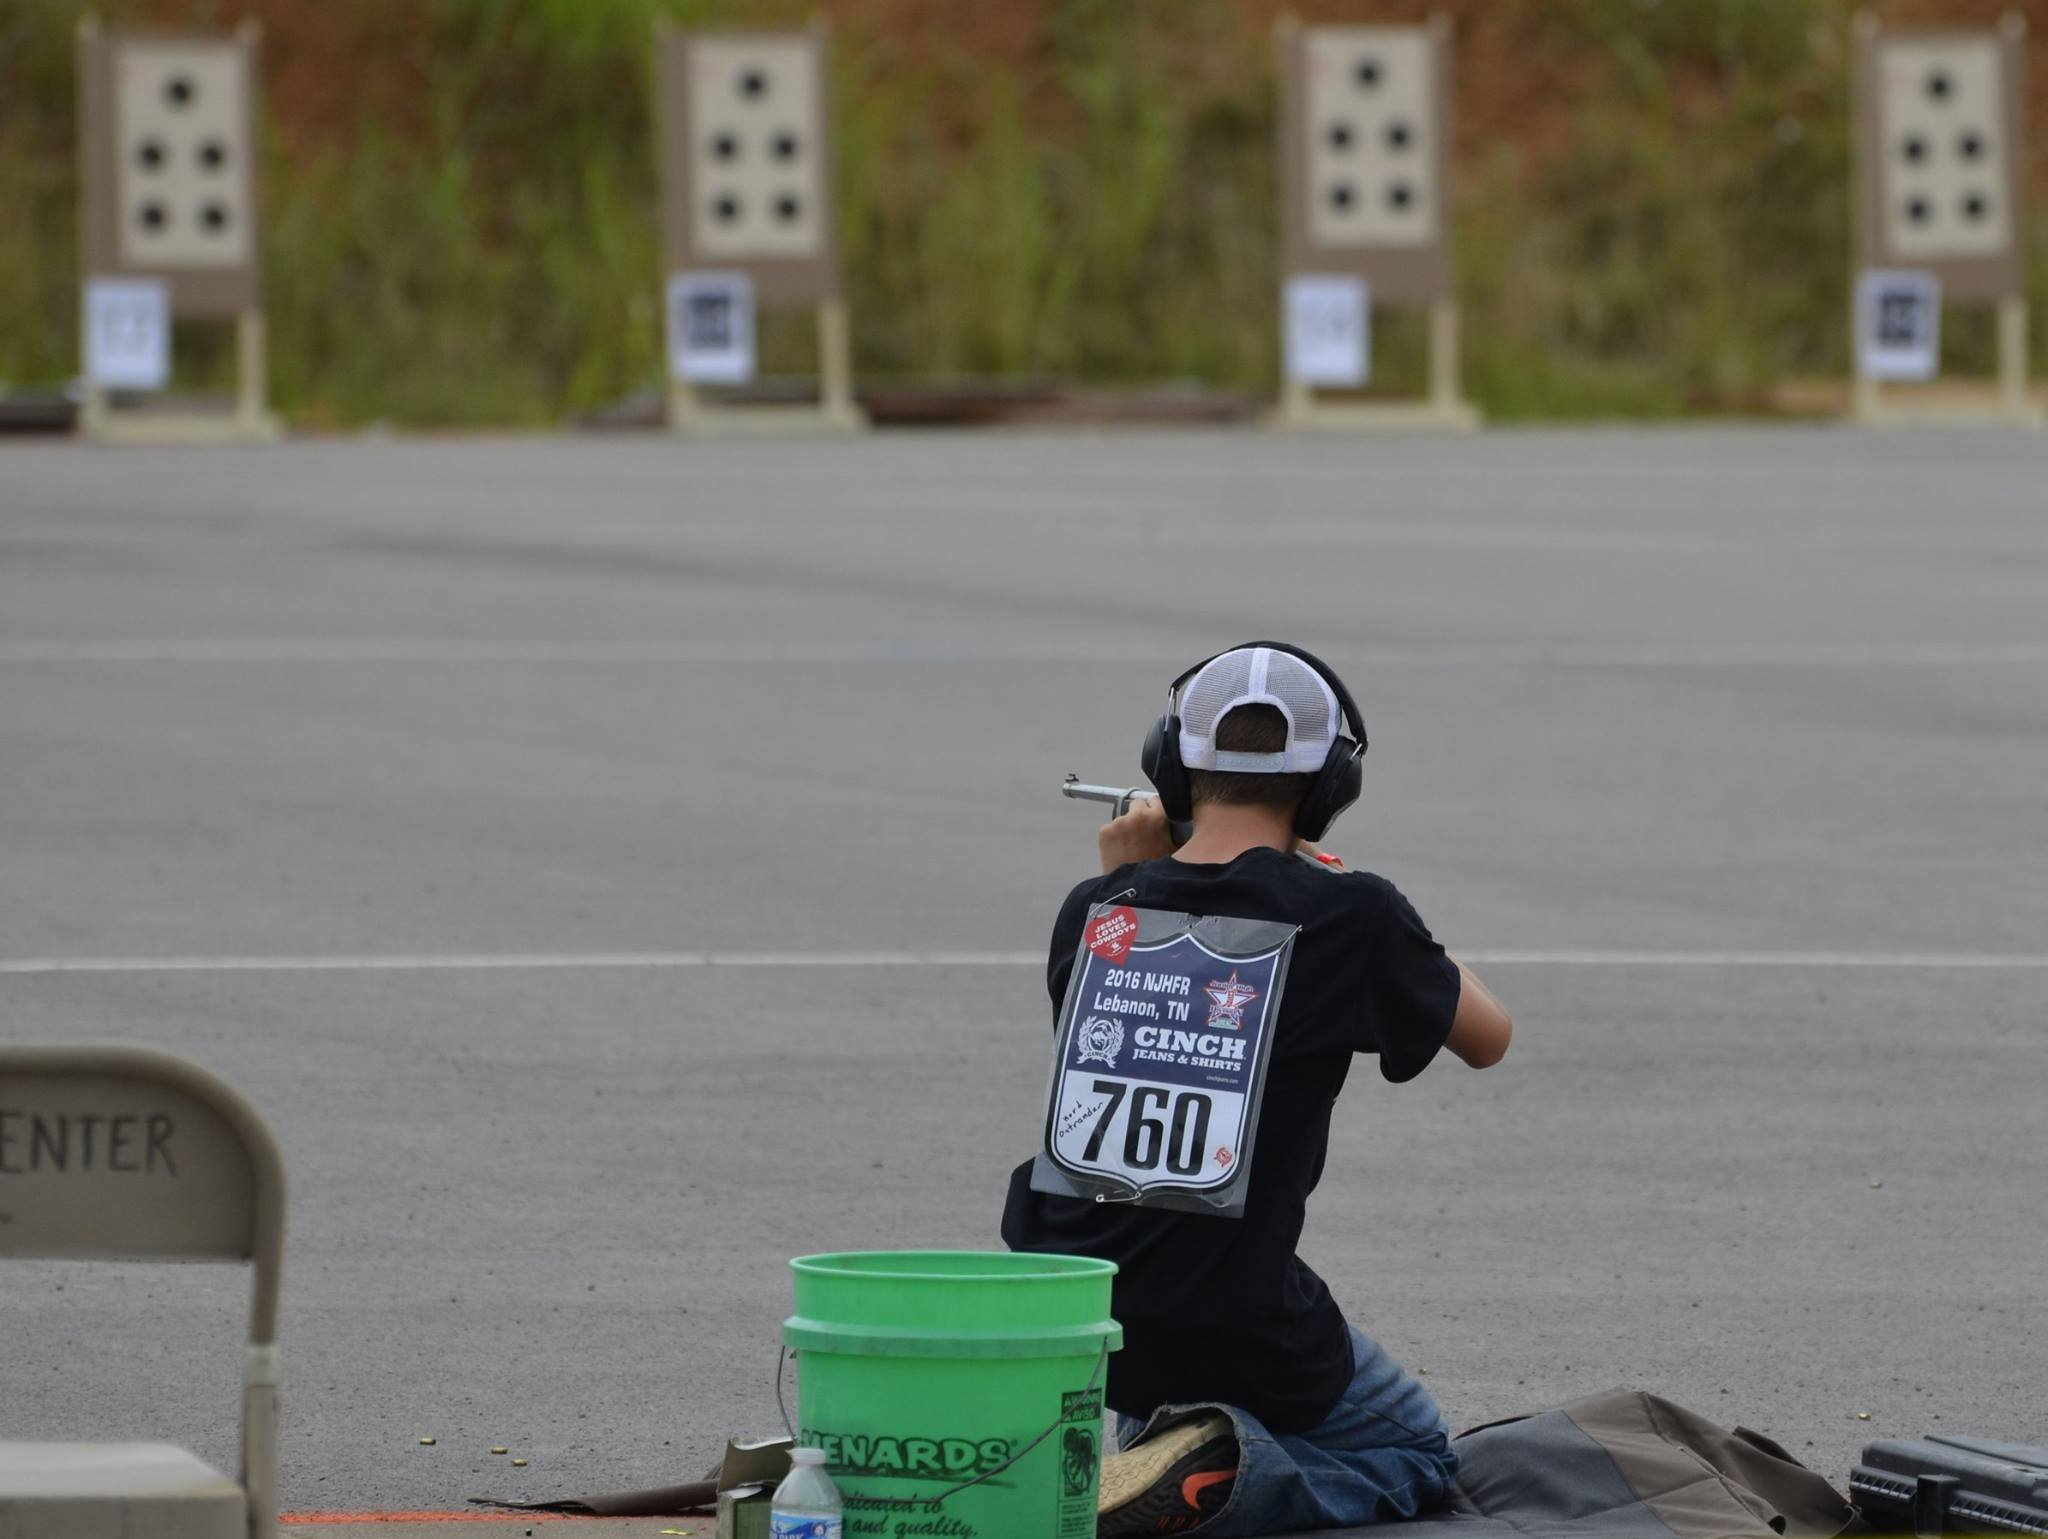 Kord Ostrander from Glenwood, Iowa in the NJHFR light rifle competition. Photo credit Lisa A Zalaznik.